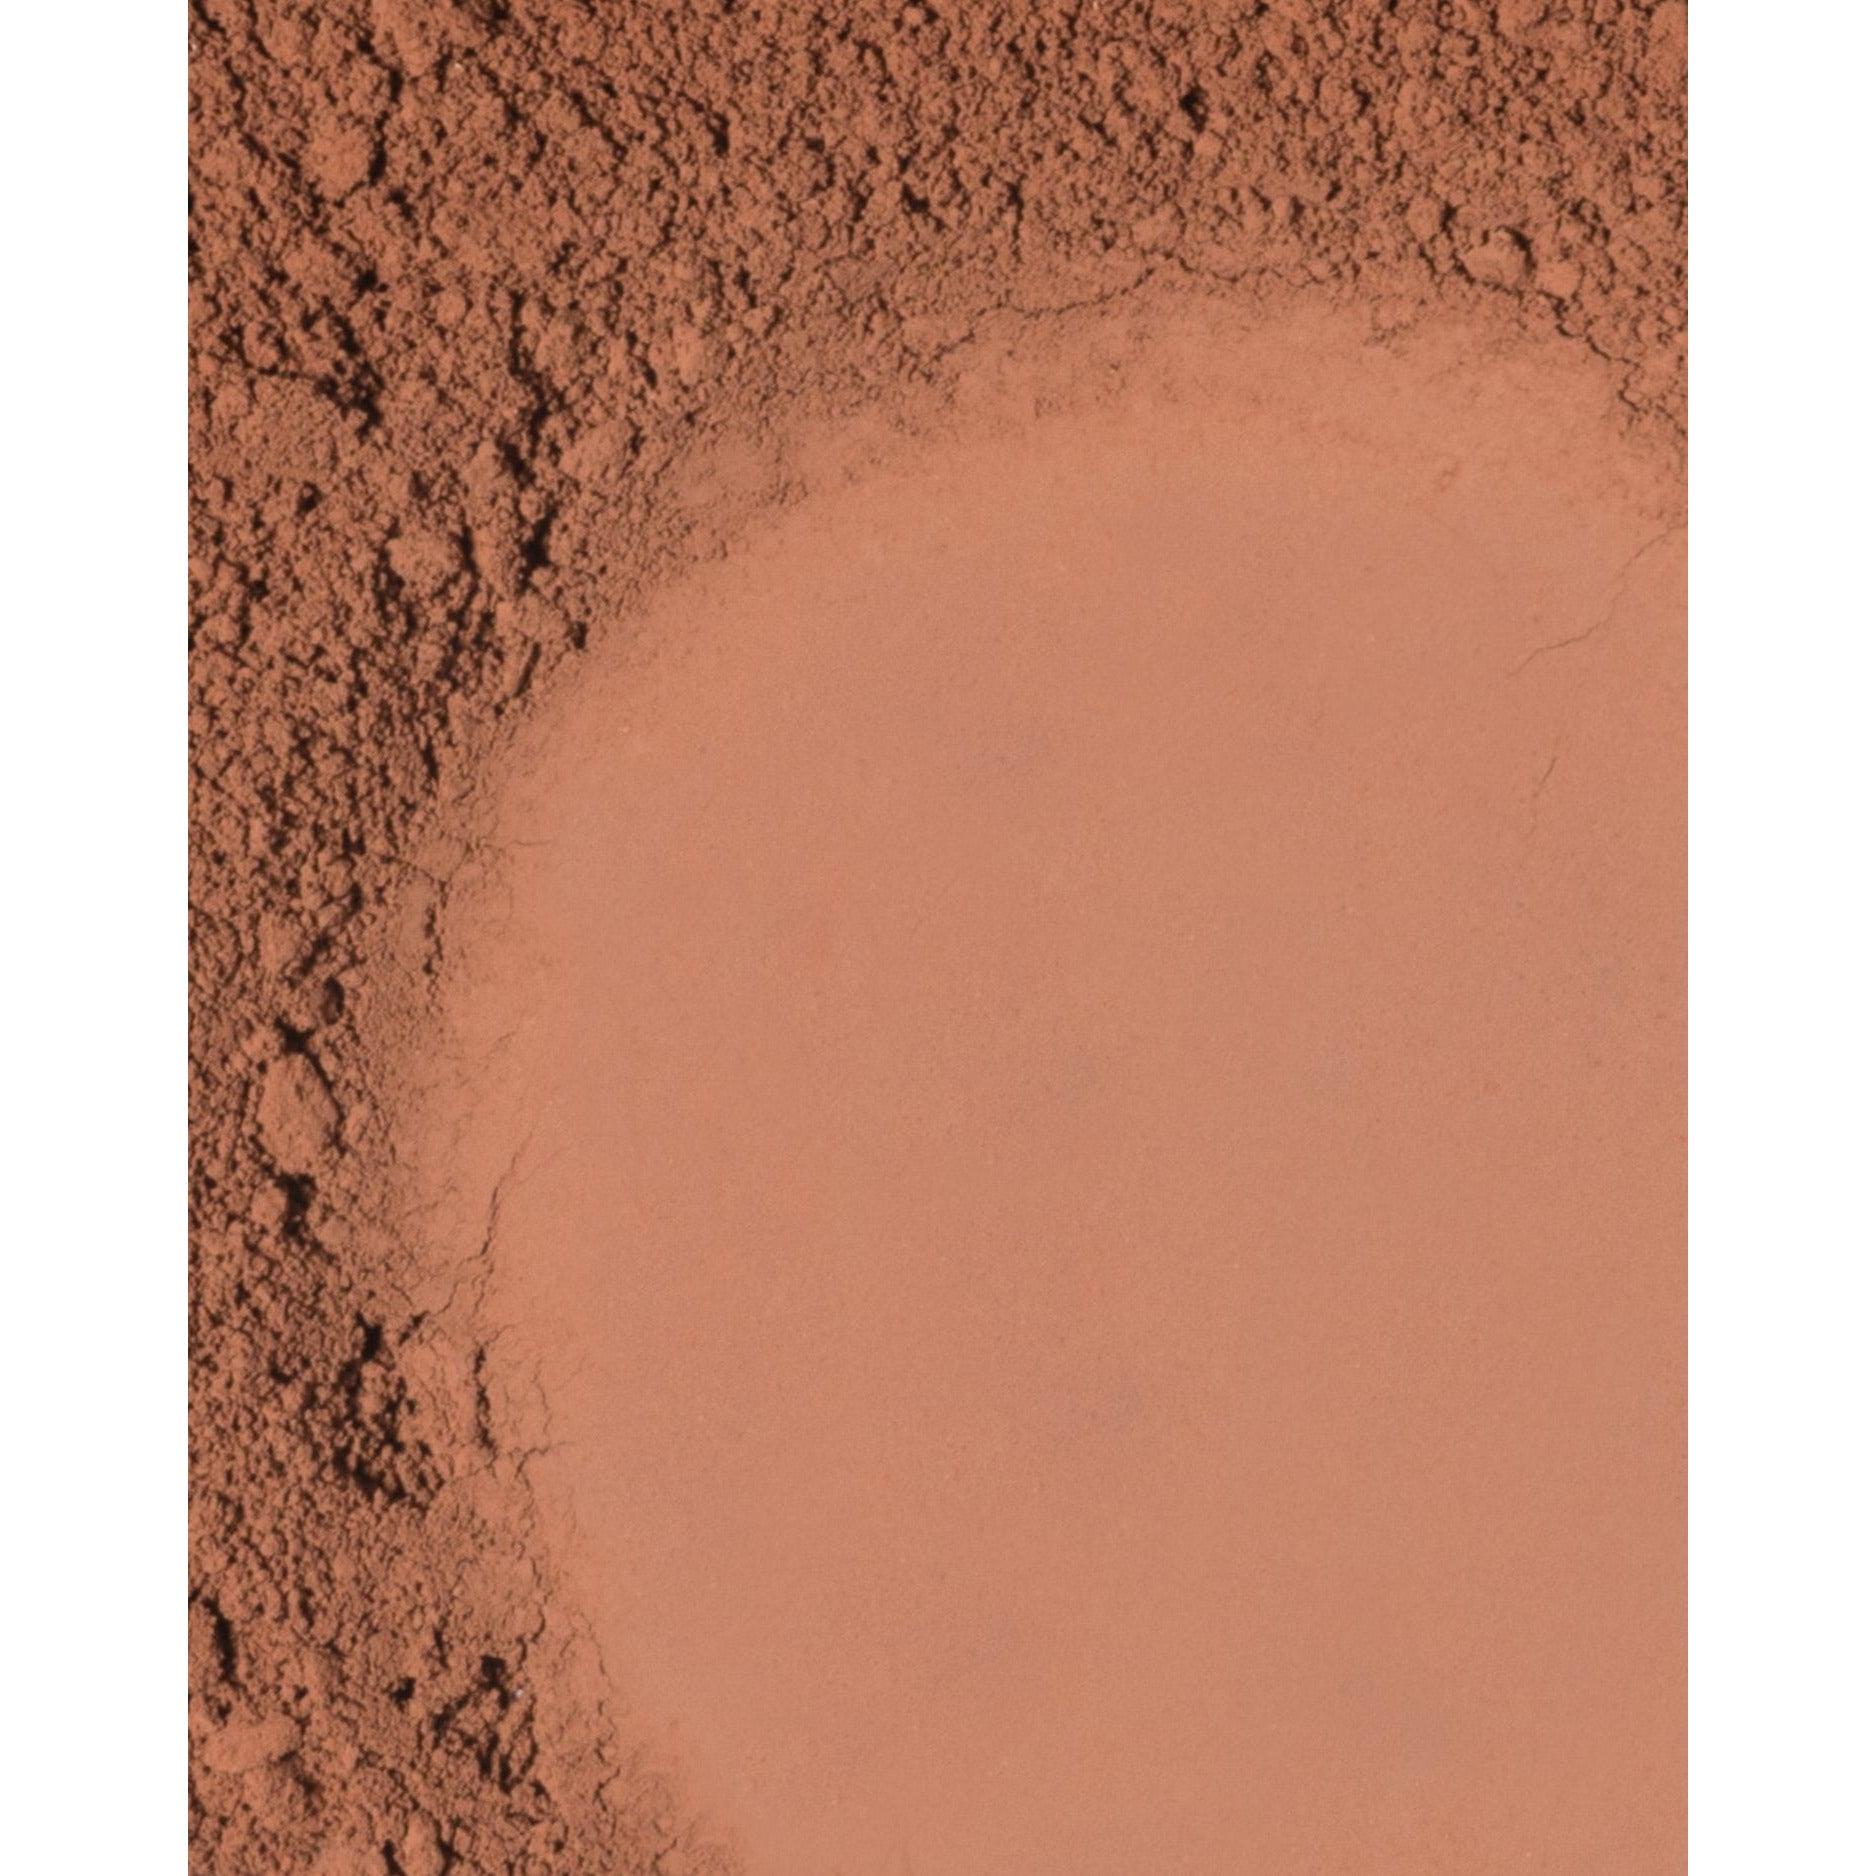 Determined - Omiana Loose Powder Mineral Foundation No Titanium Dioxide and No Mica